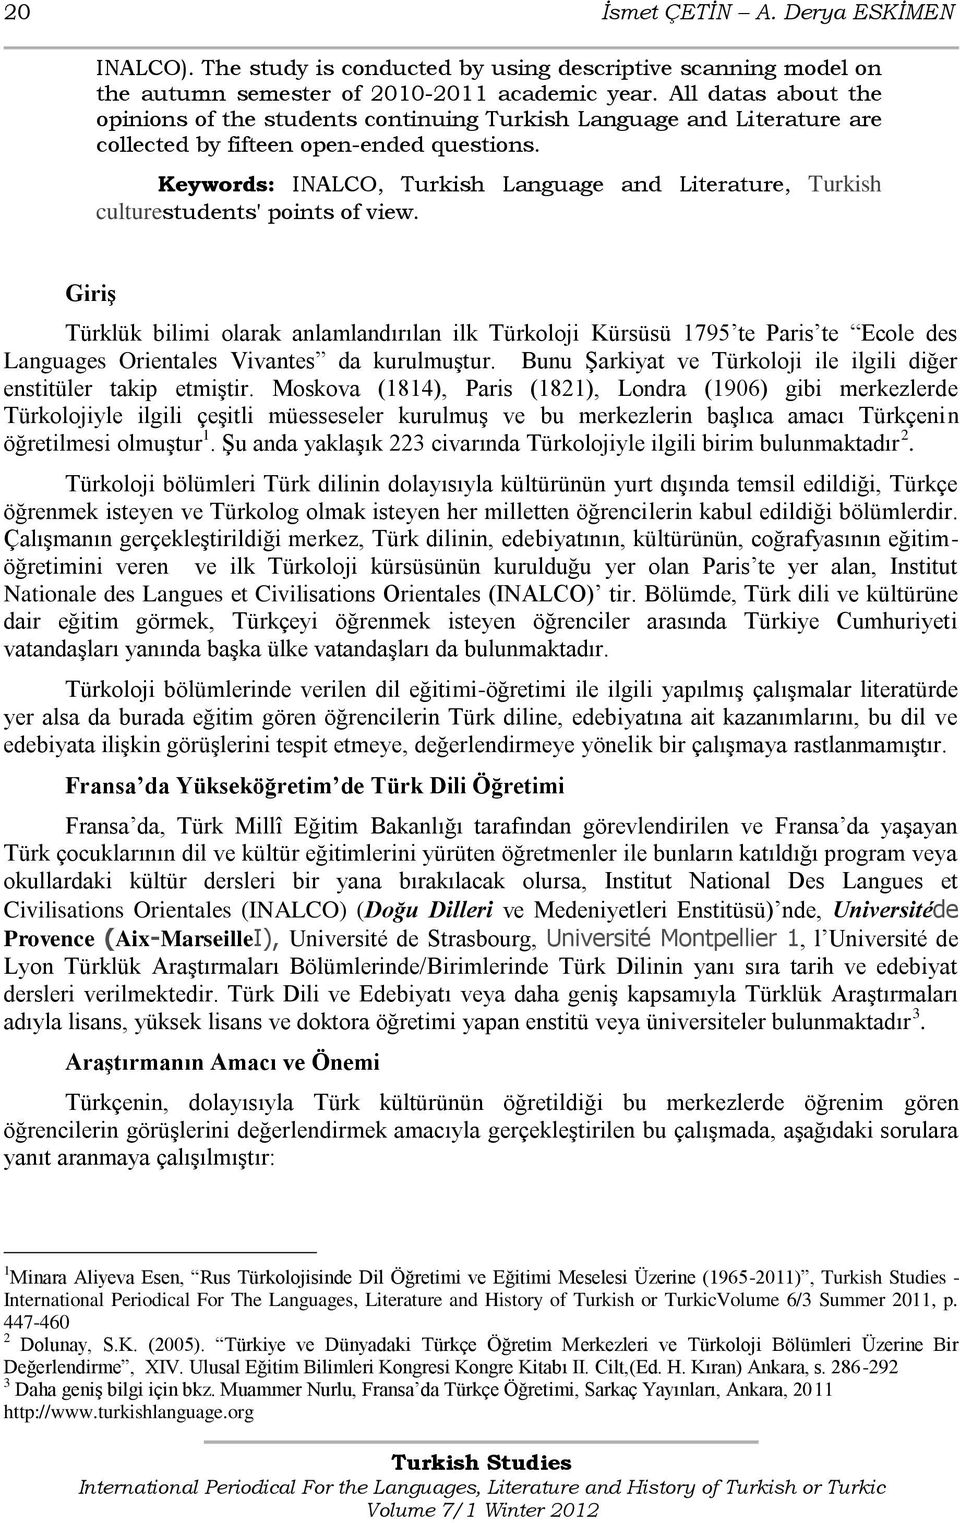 Keywords: INALCO, Turkish Language and Literature, Turkish culturestudents' points of view.